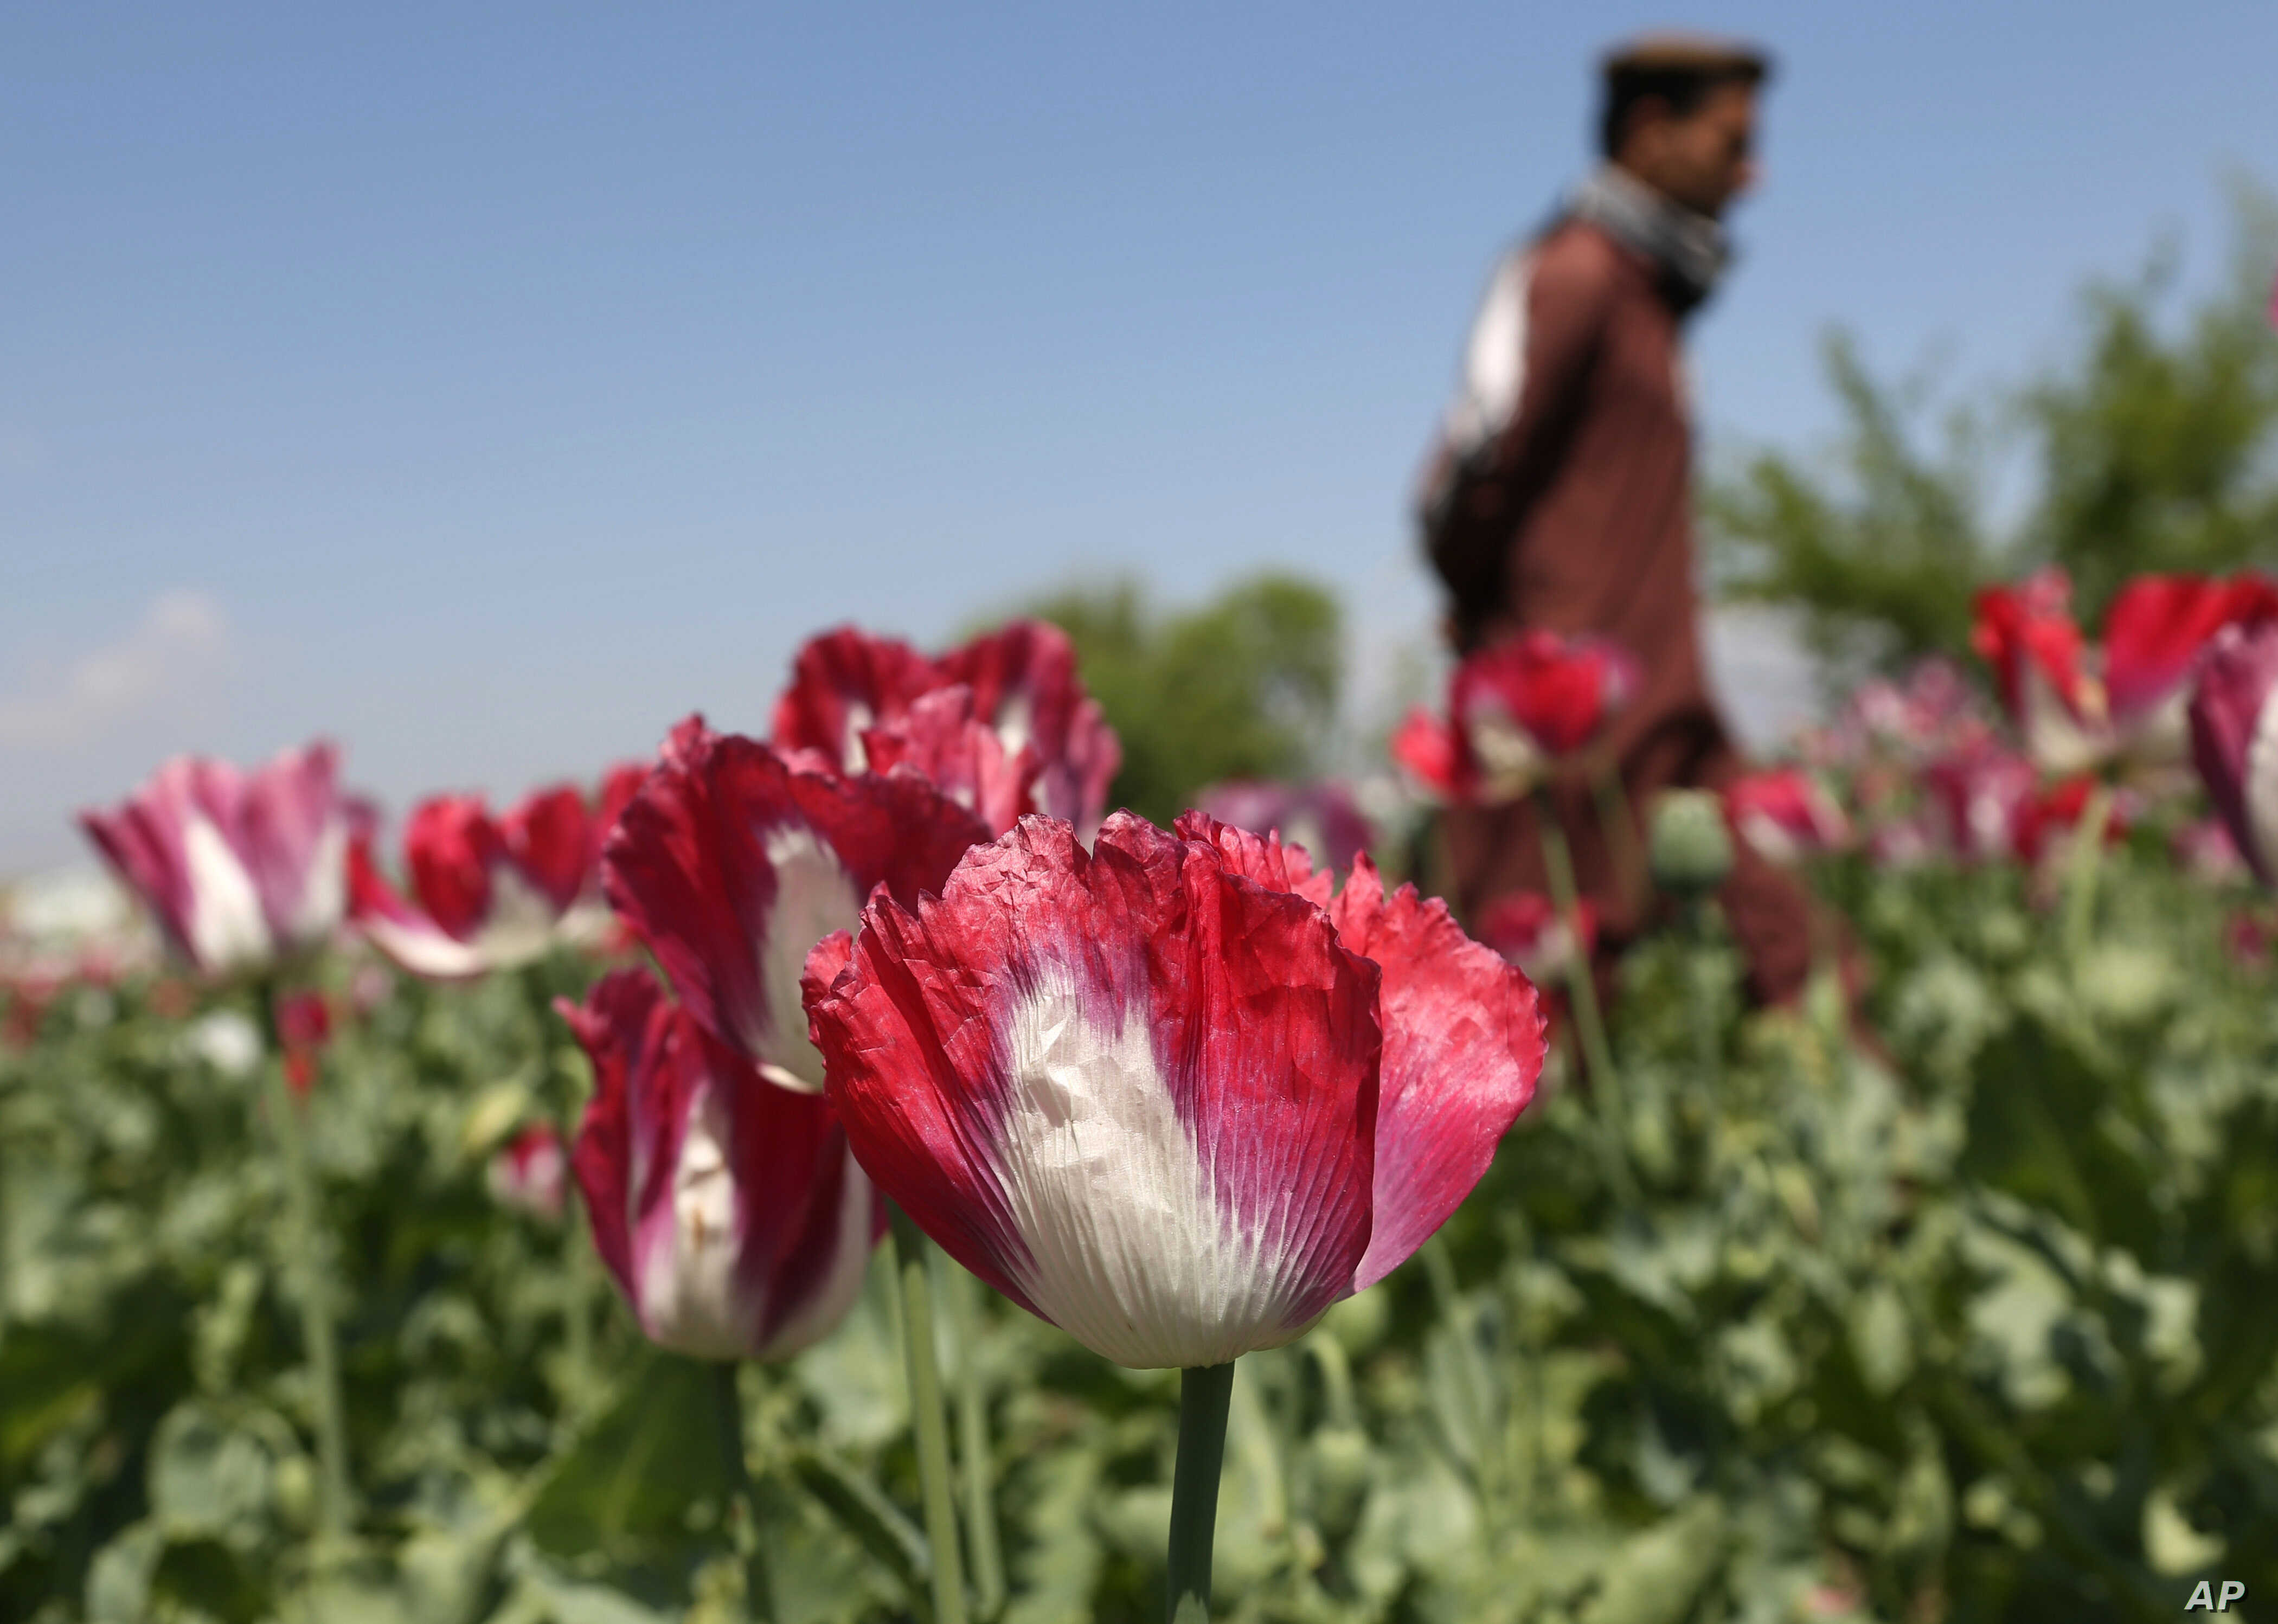 FILE - Afghan boy walks through a poppy field to harvest opium, the main ingredient in heroin, in the Khogyani district of Jalalabad, east of Kabul, Afghanistan.